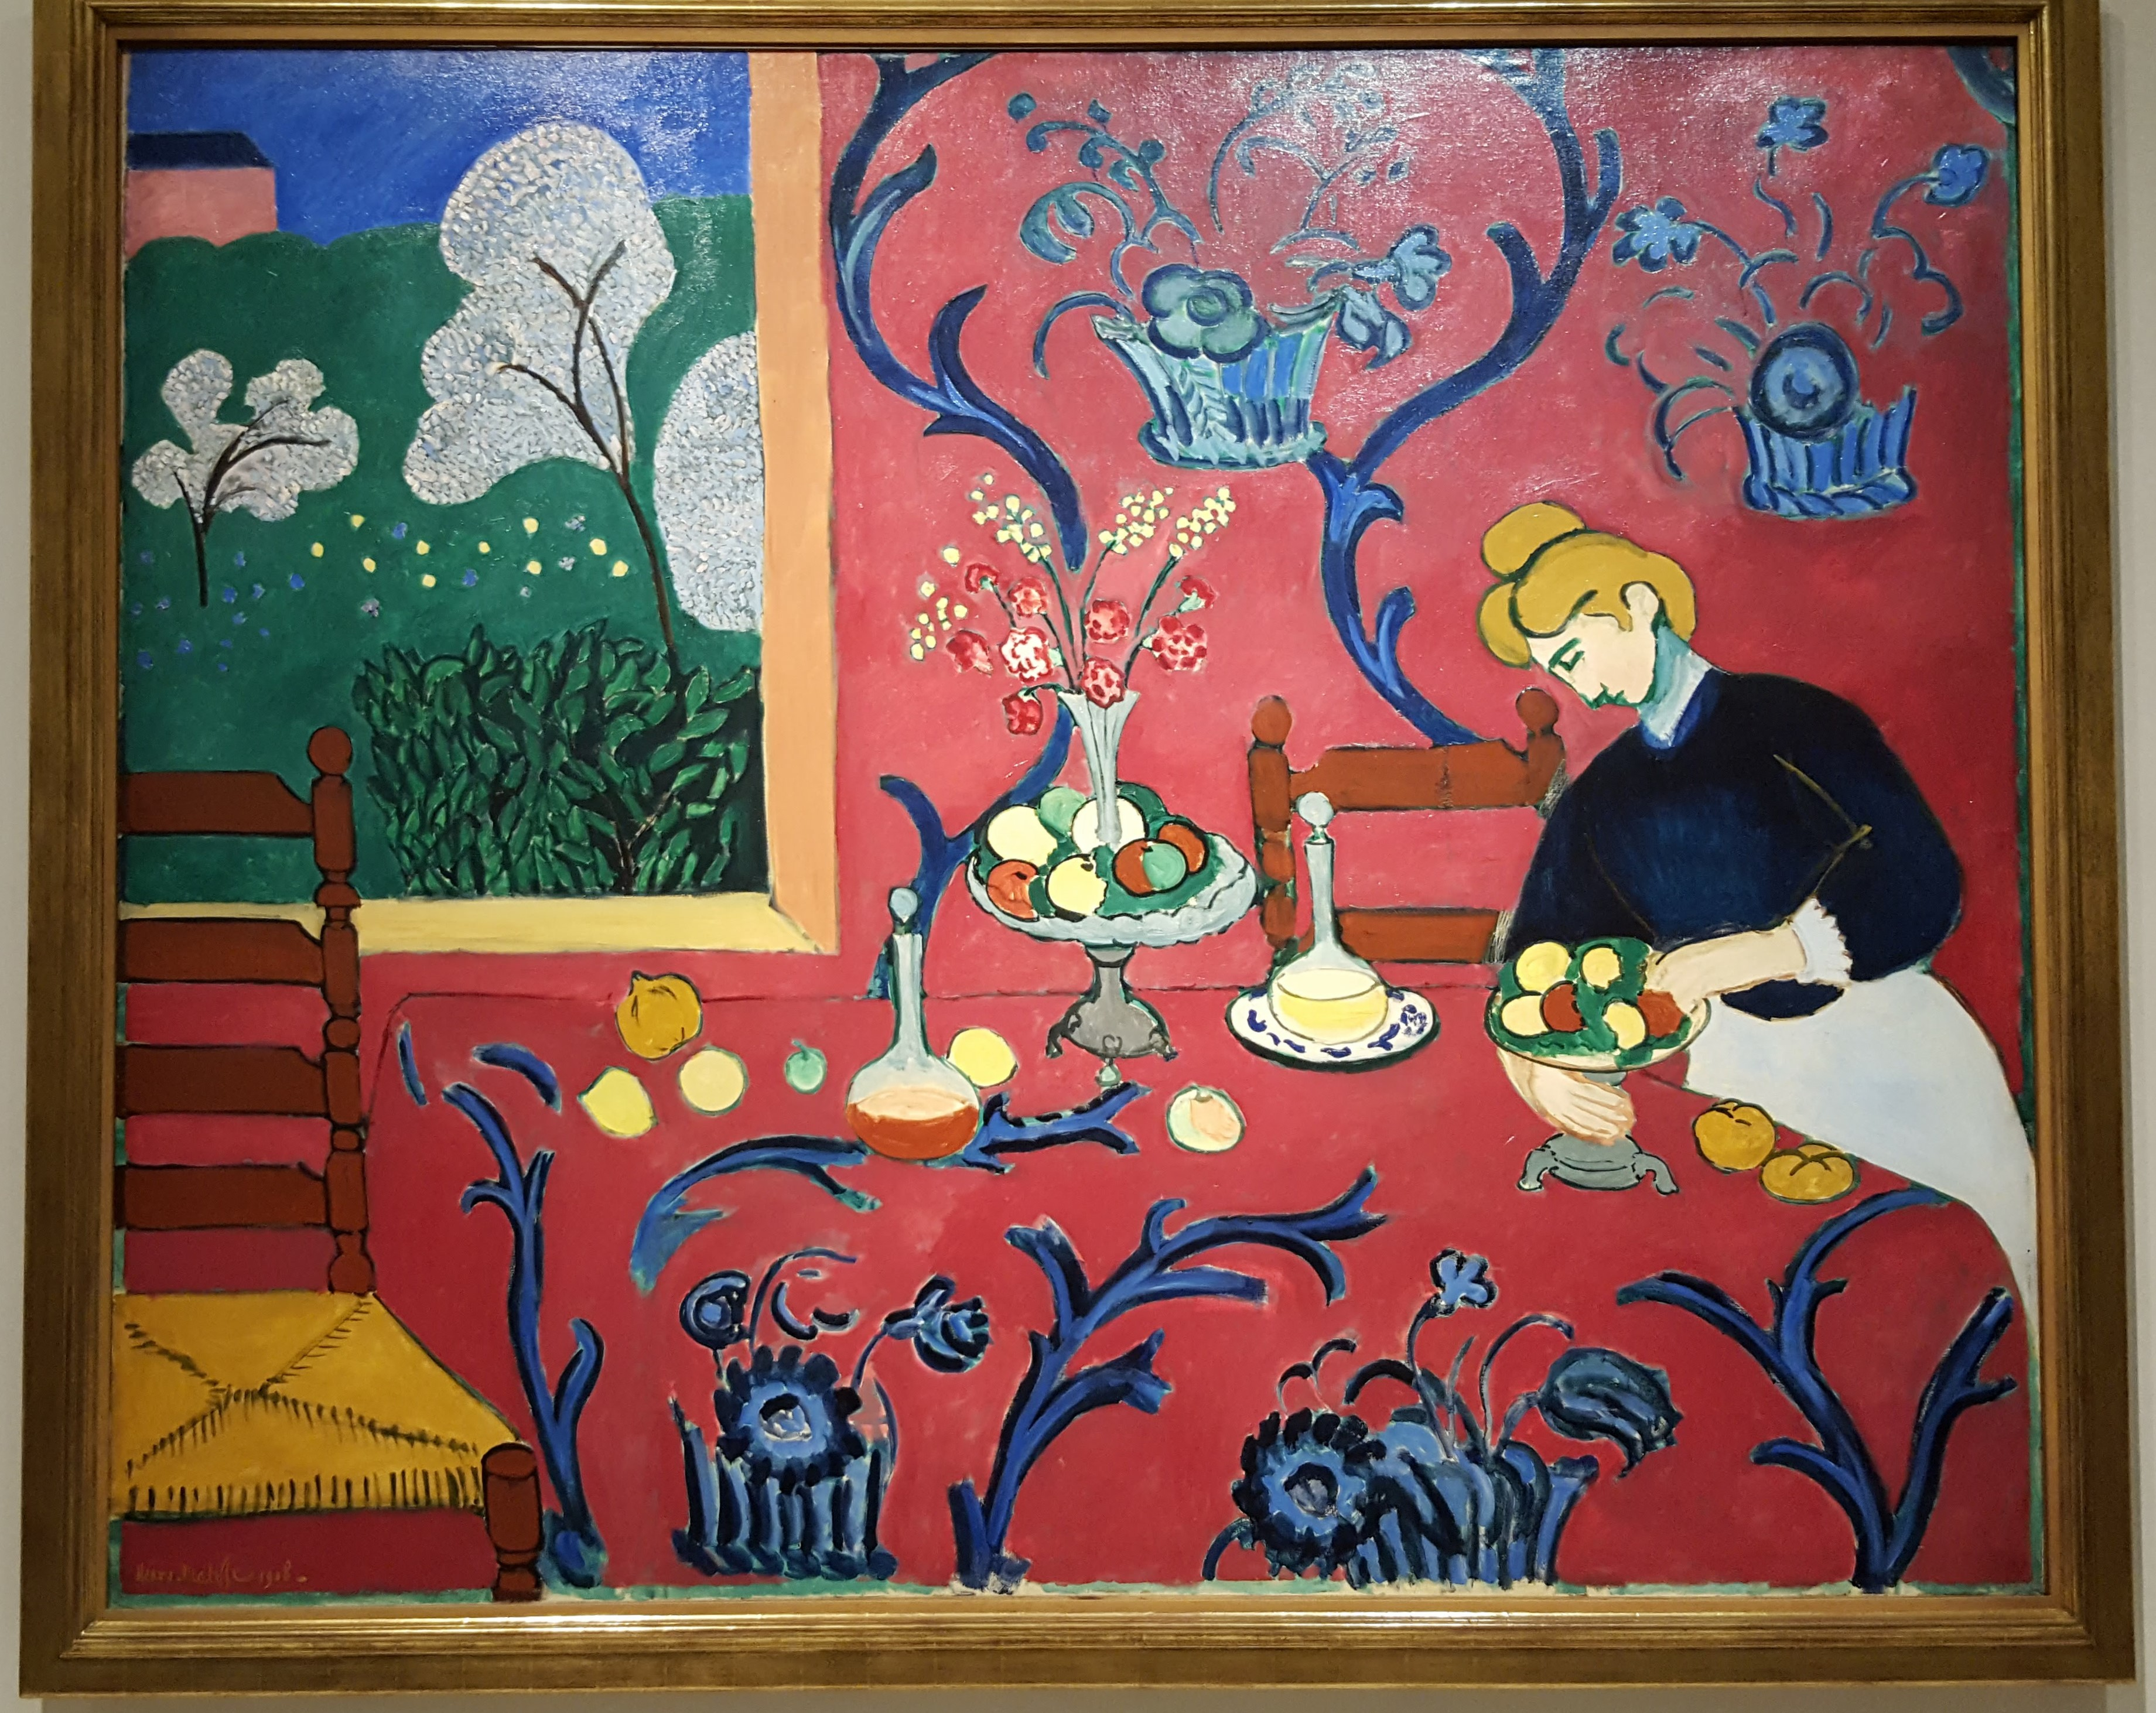 Matisse, The Dessert, 1908